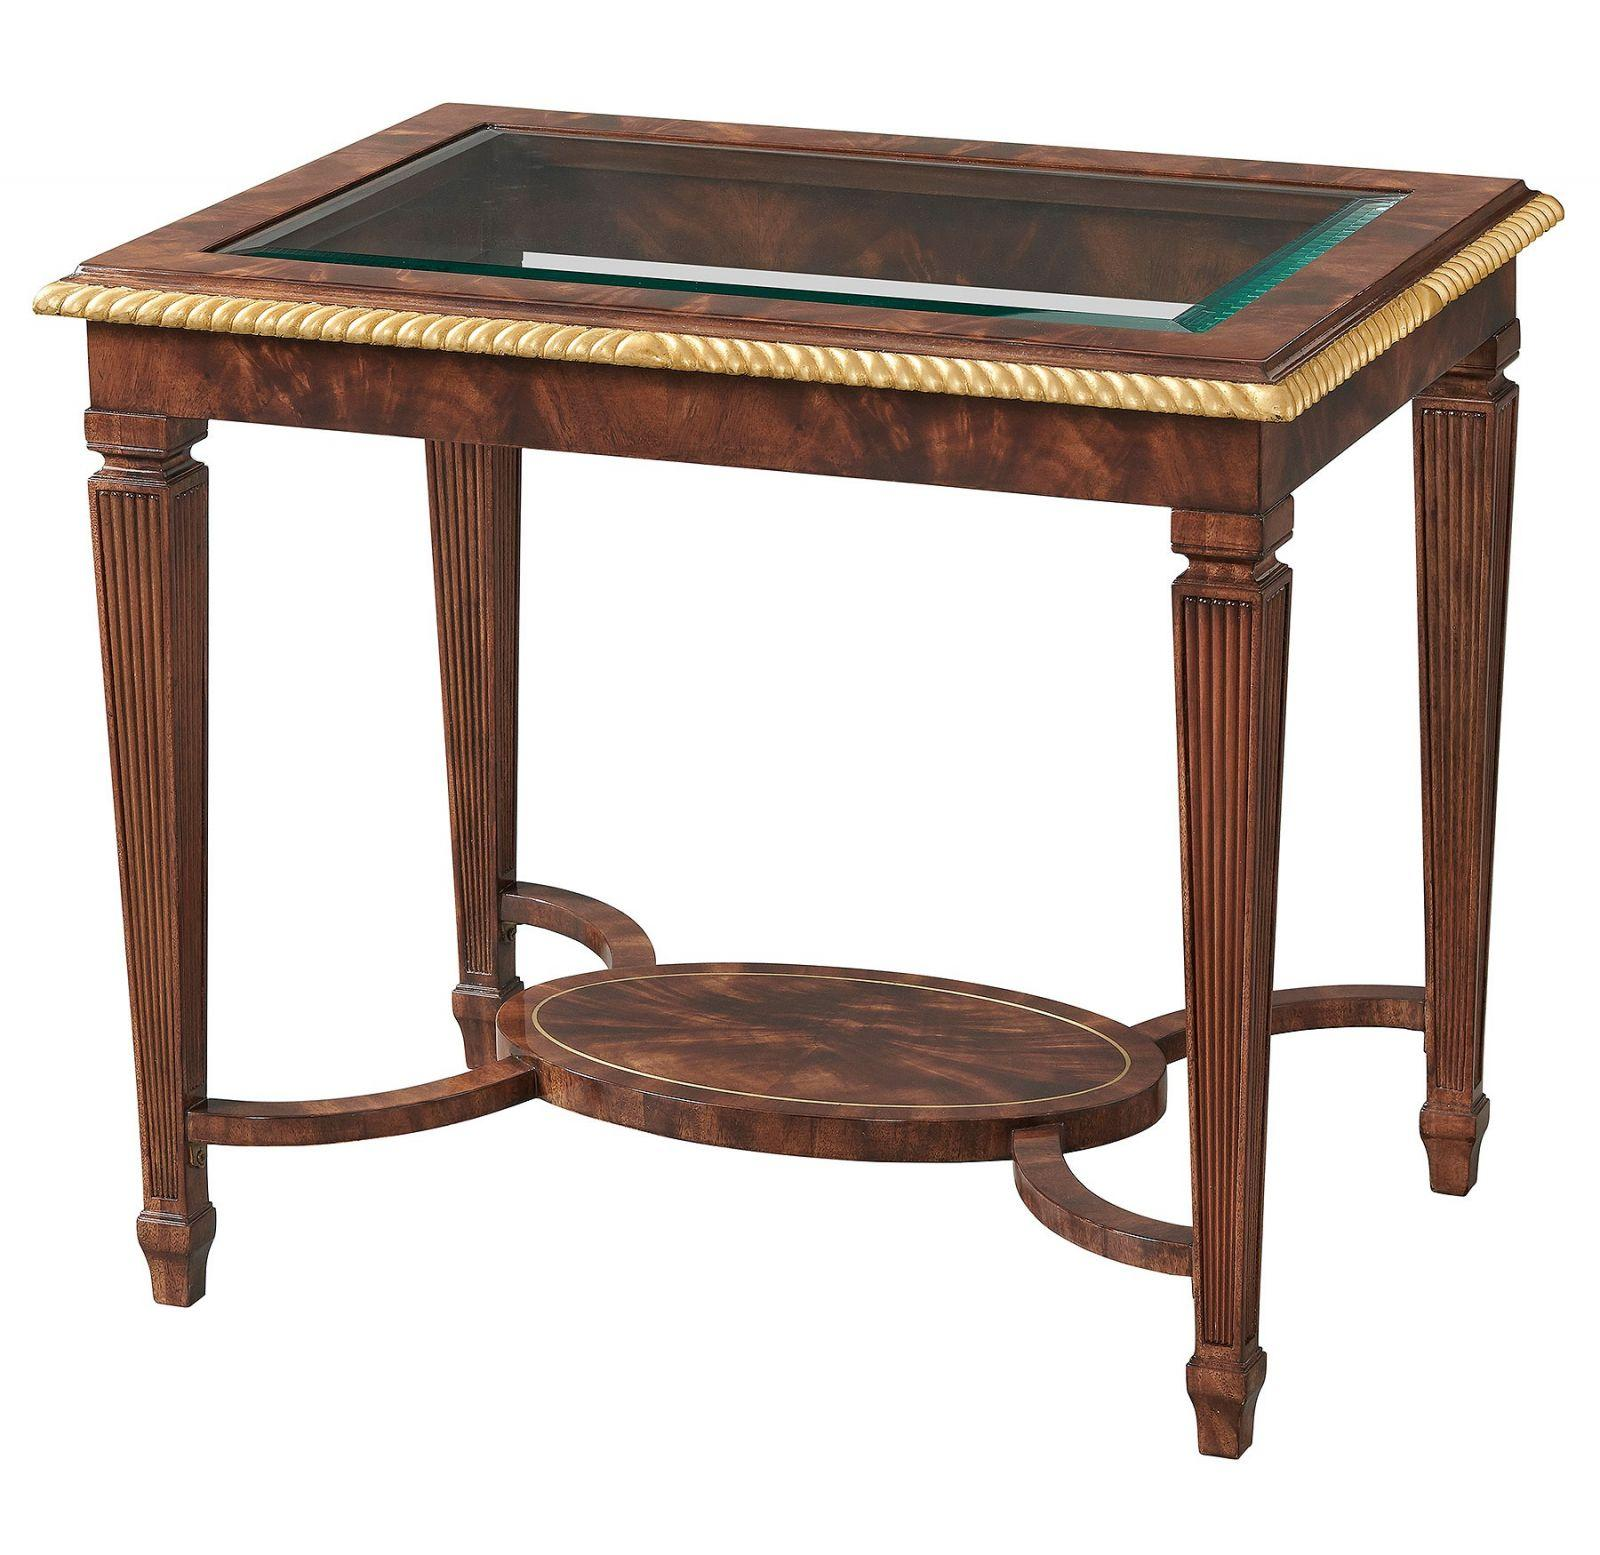 Mahogany side or lamp table with glass top